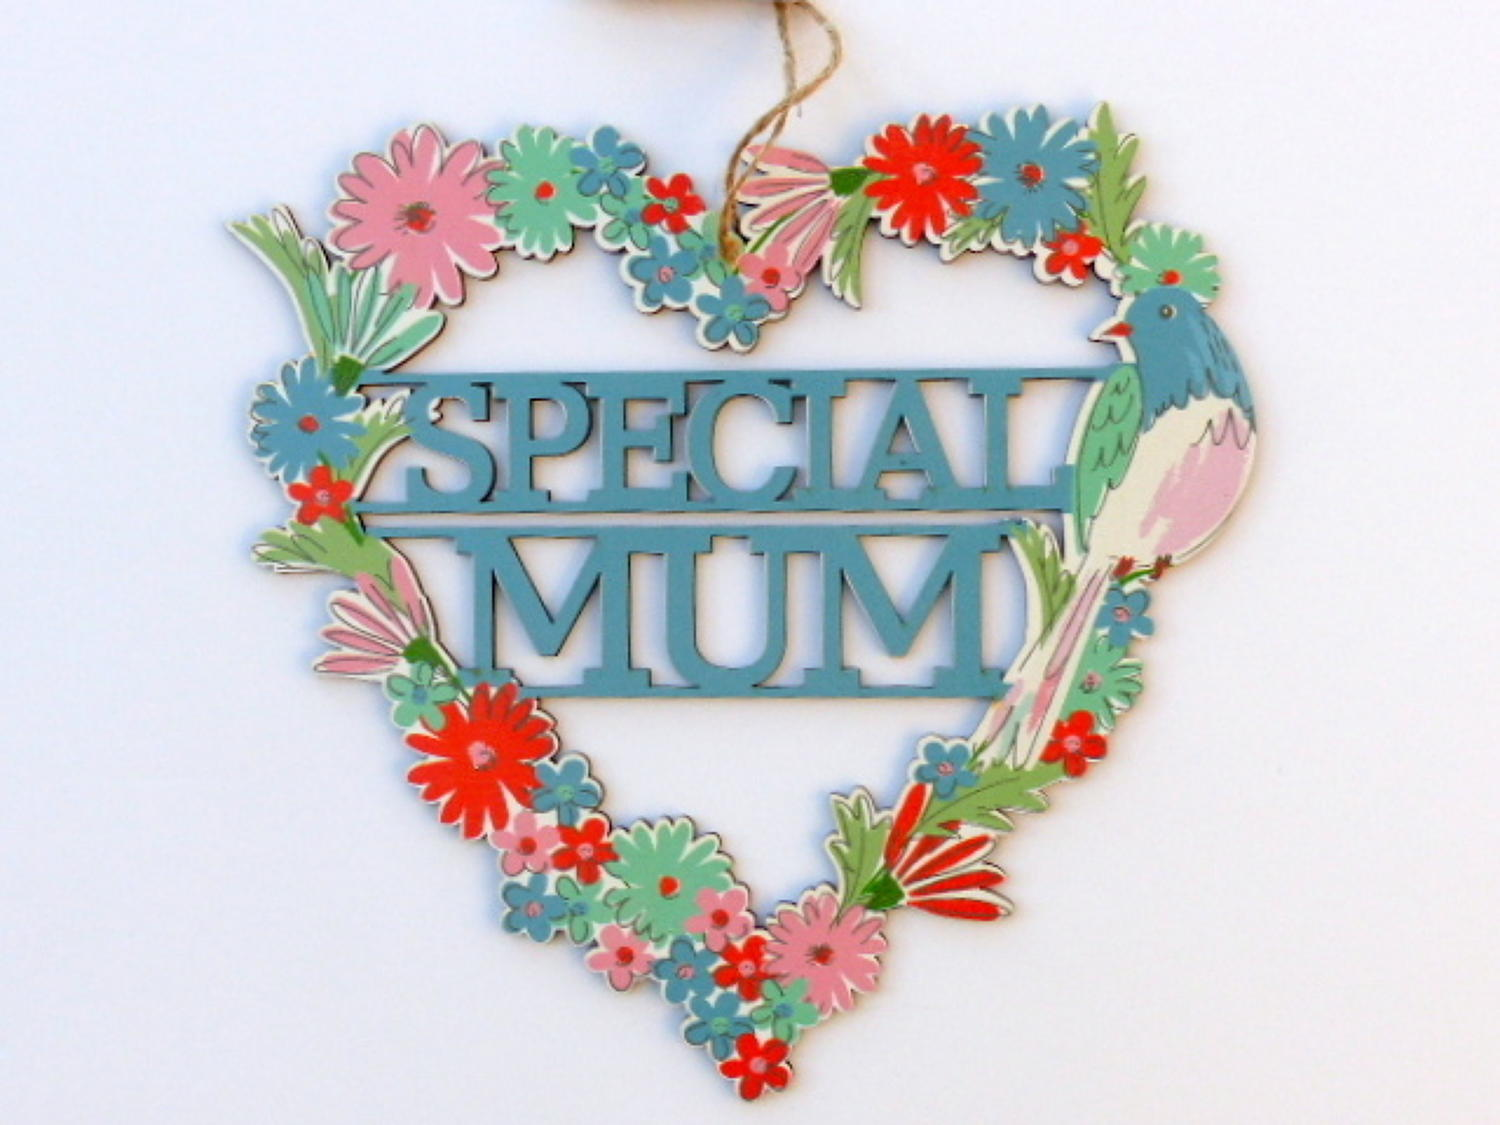 Special Mum Cut-Out Heart